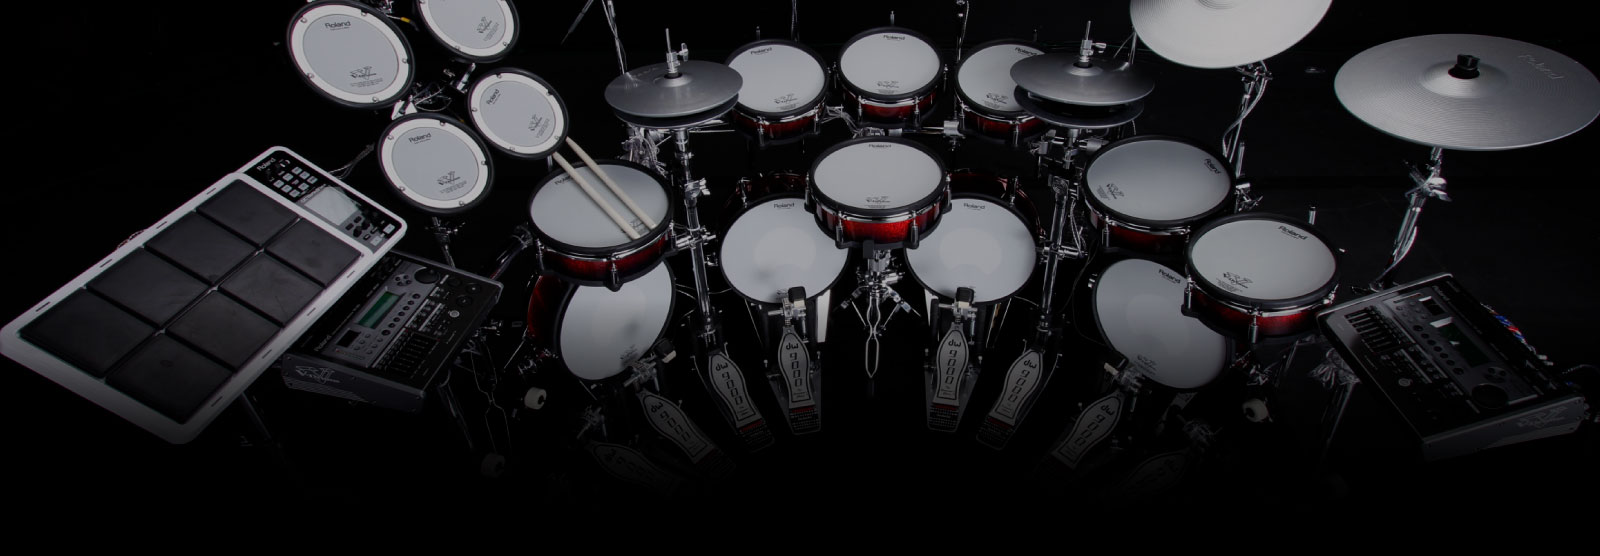 Roland - Stand-Alone Articles - History - Innovation of V-Drums